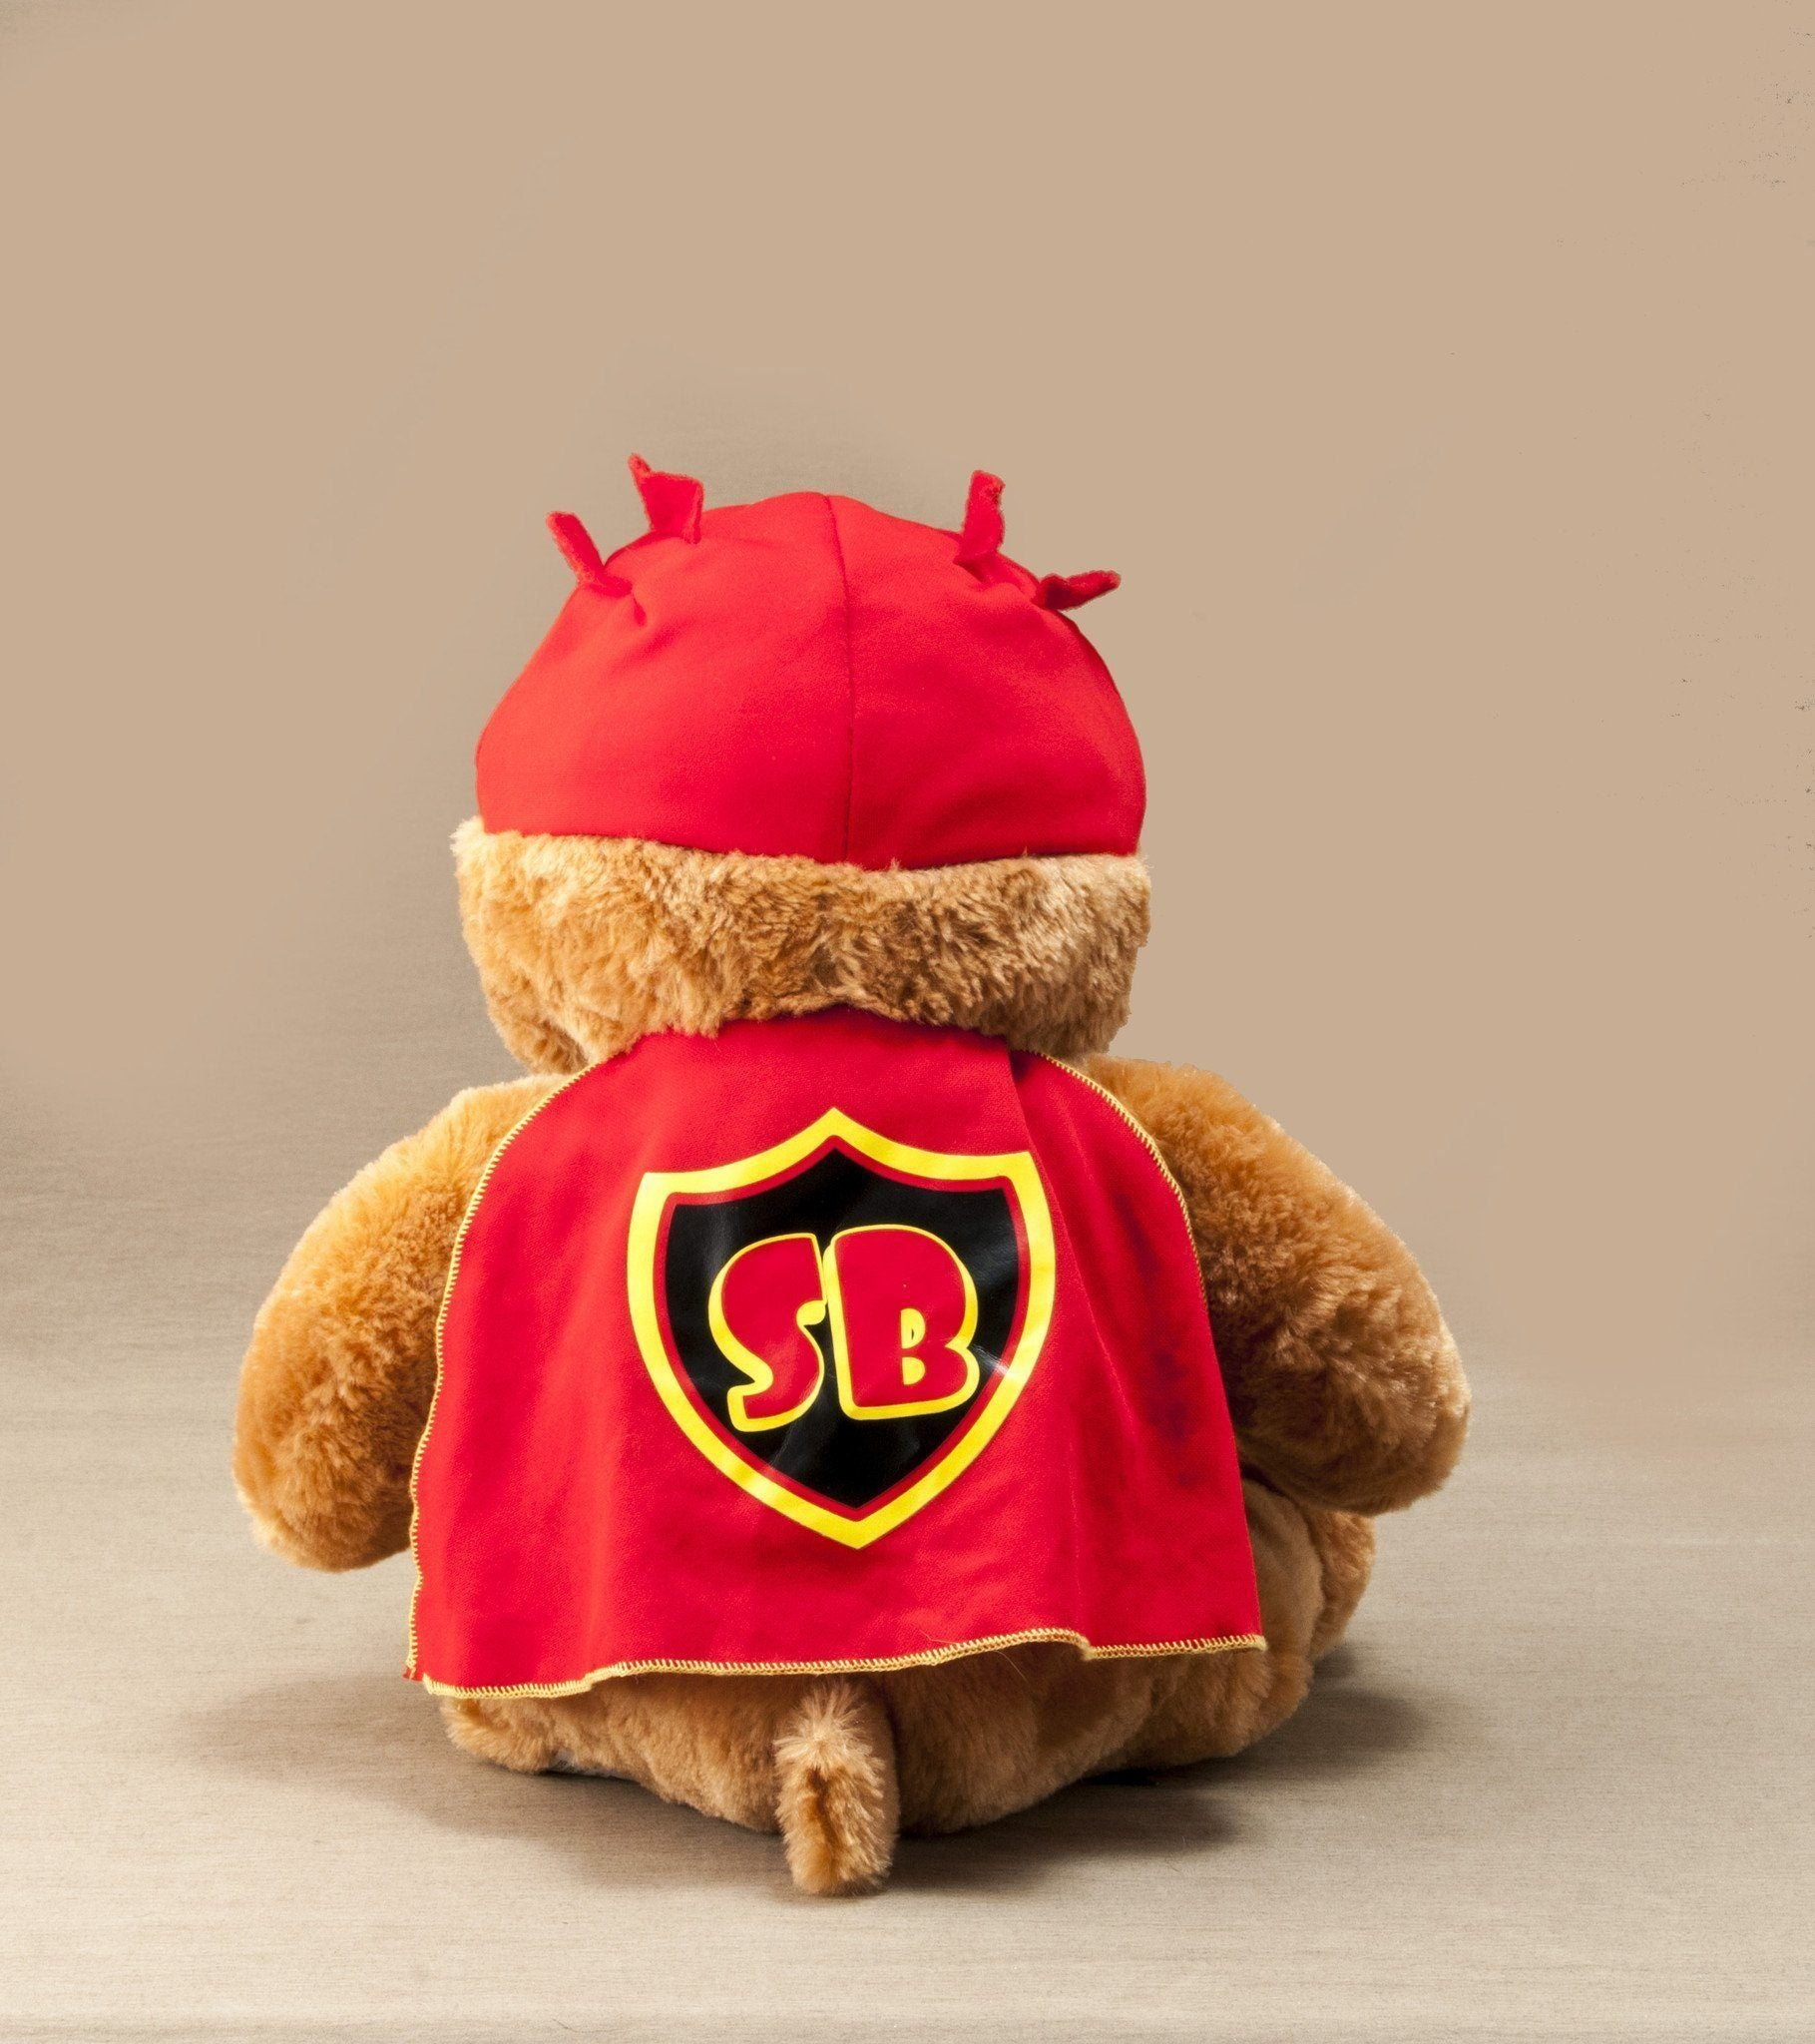 Flipemz Brendan Bear to Super Bear Plush Toy